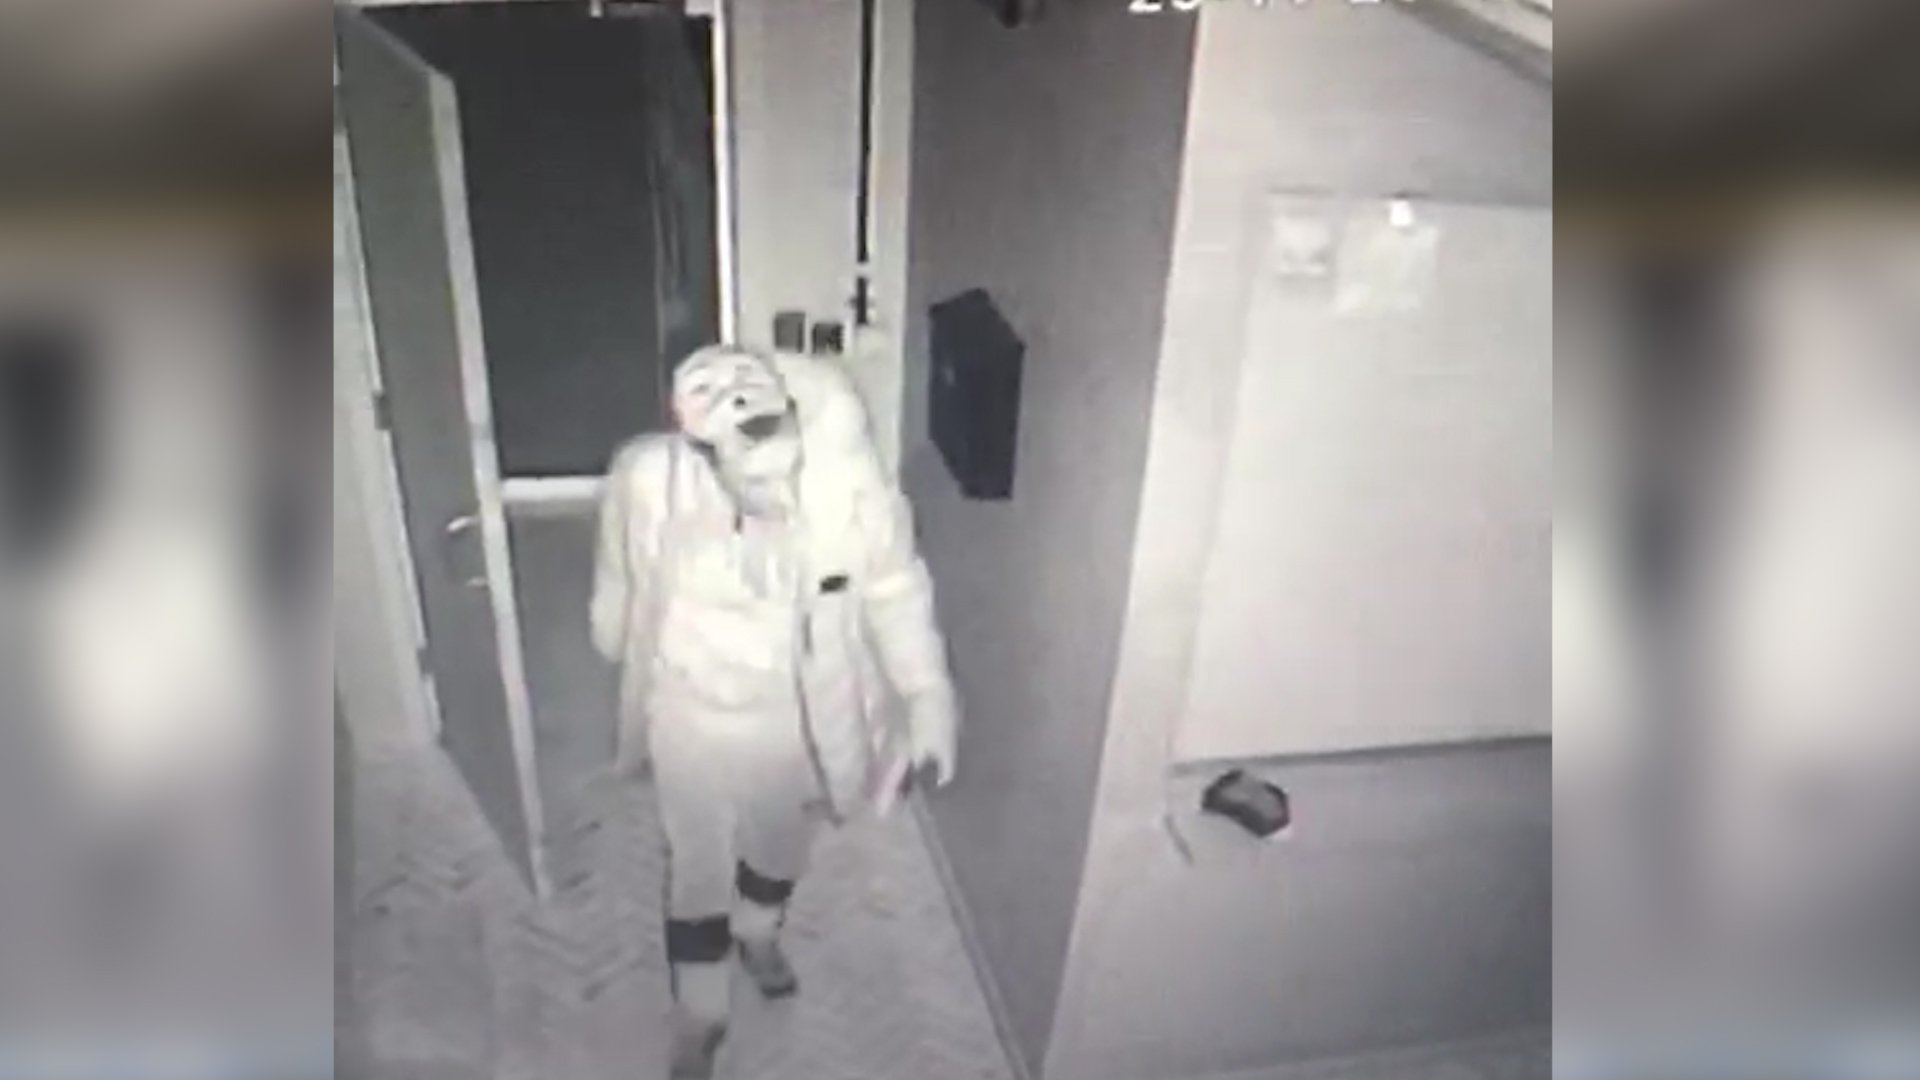 Lucardo Escape Room Manchester where bungling burglars broke in in the early hours of Thursday November 29th 2018. Grab from CCTV footage